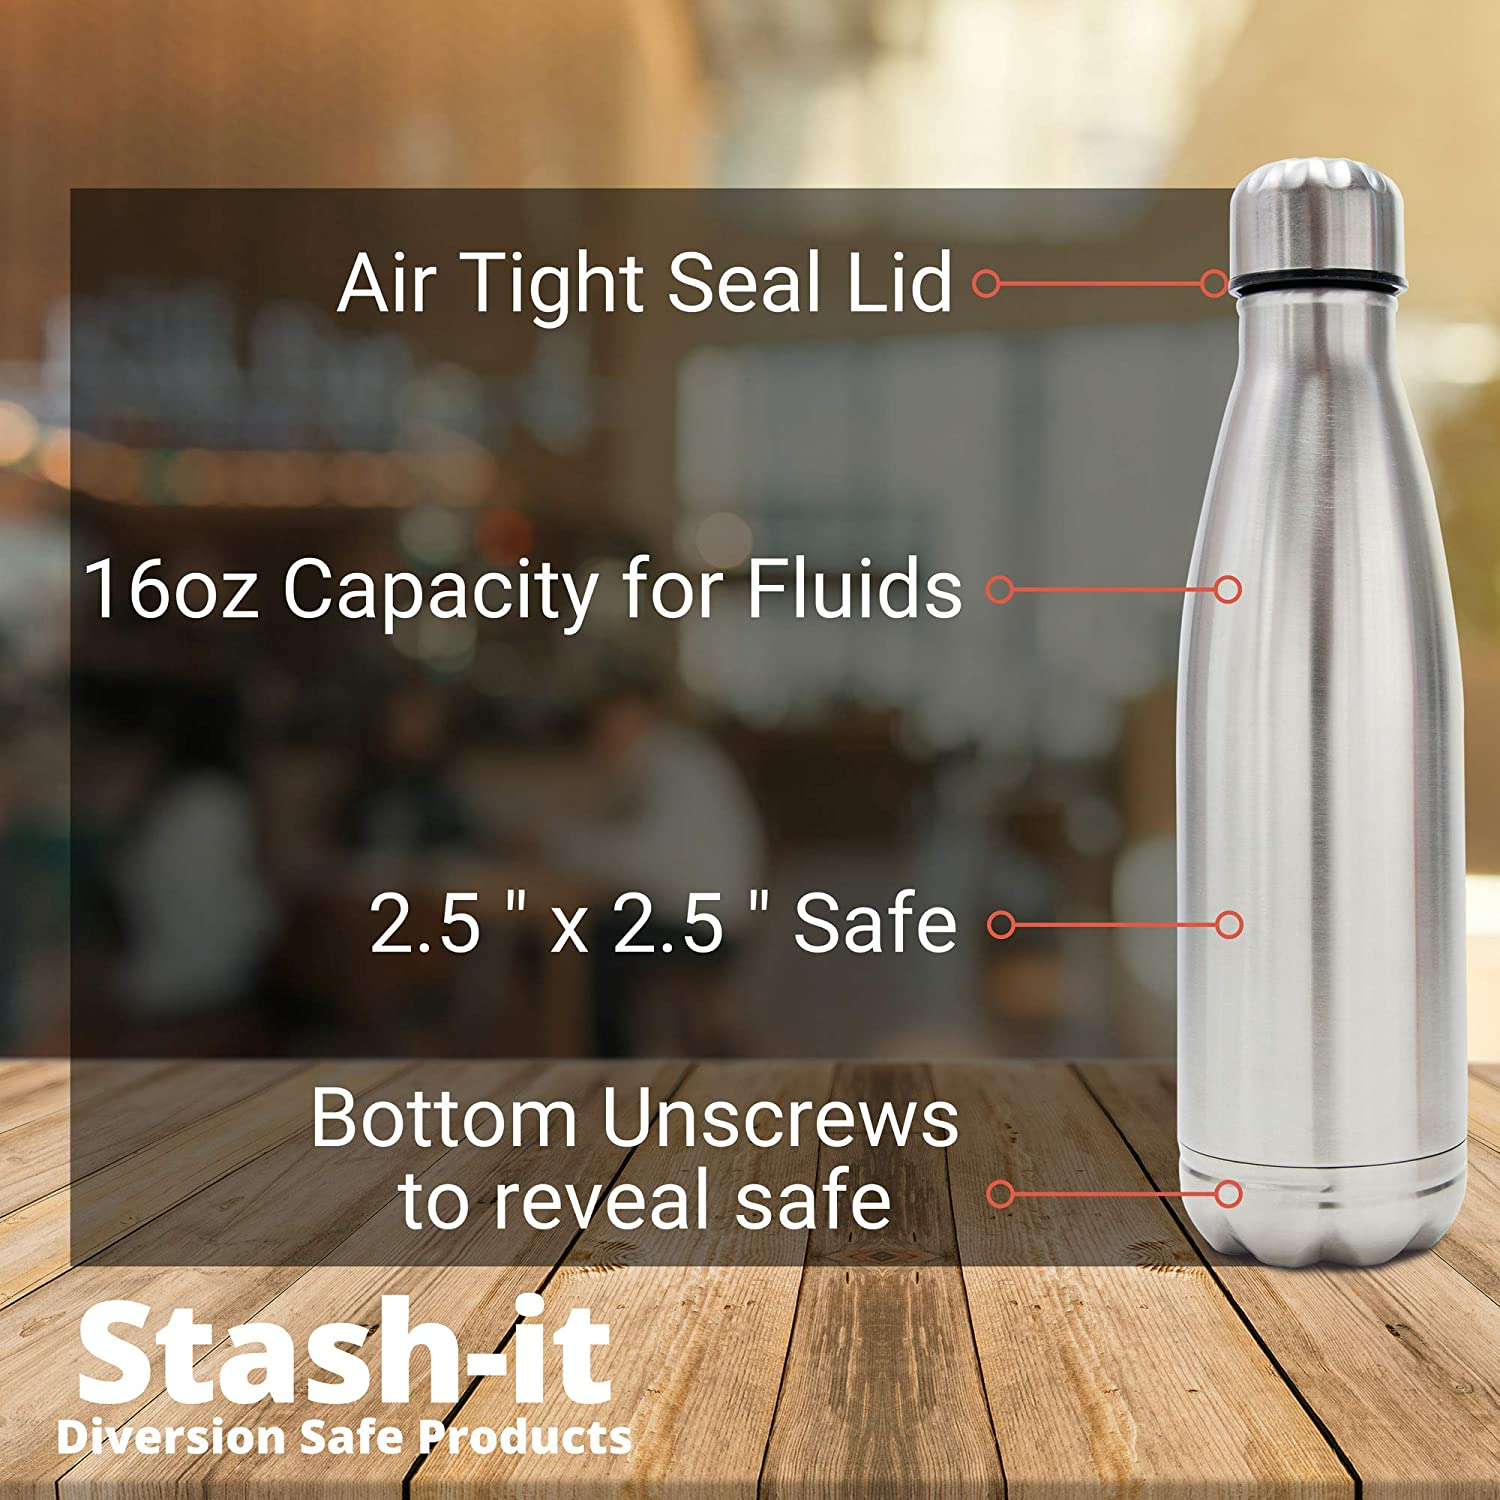 Diversion Water Bottle Can Safe by Stash-it, Stainless Steel Tumbler with Hiding Spot for Money, Bonus Smell Proof Bag, Discreet Decoy for Travel or at Home, Bottom Unscrews to Store your Valuables - -